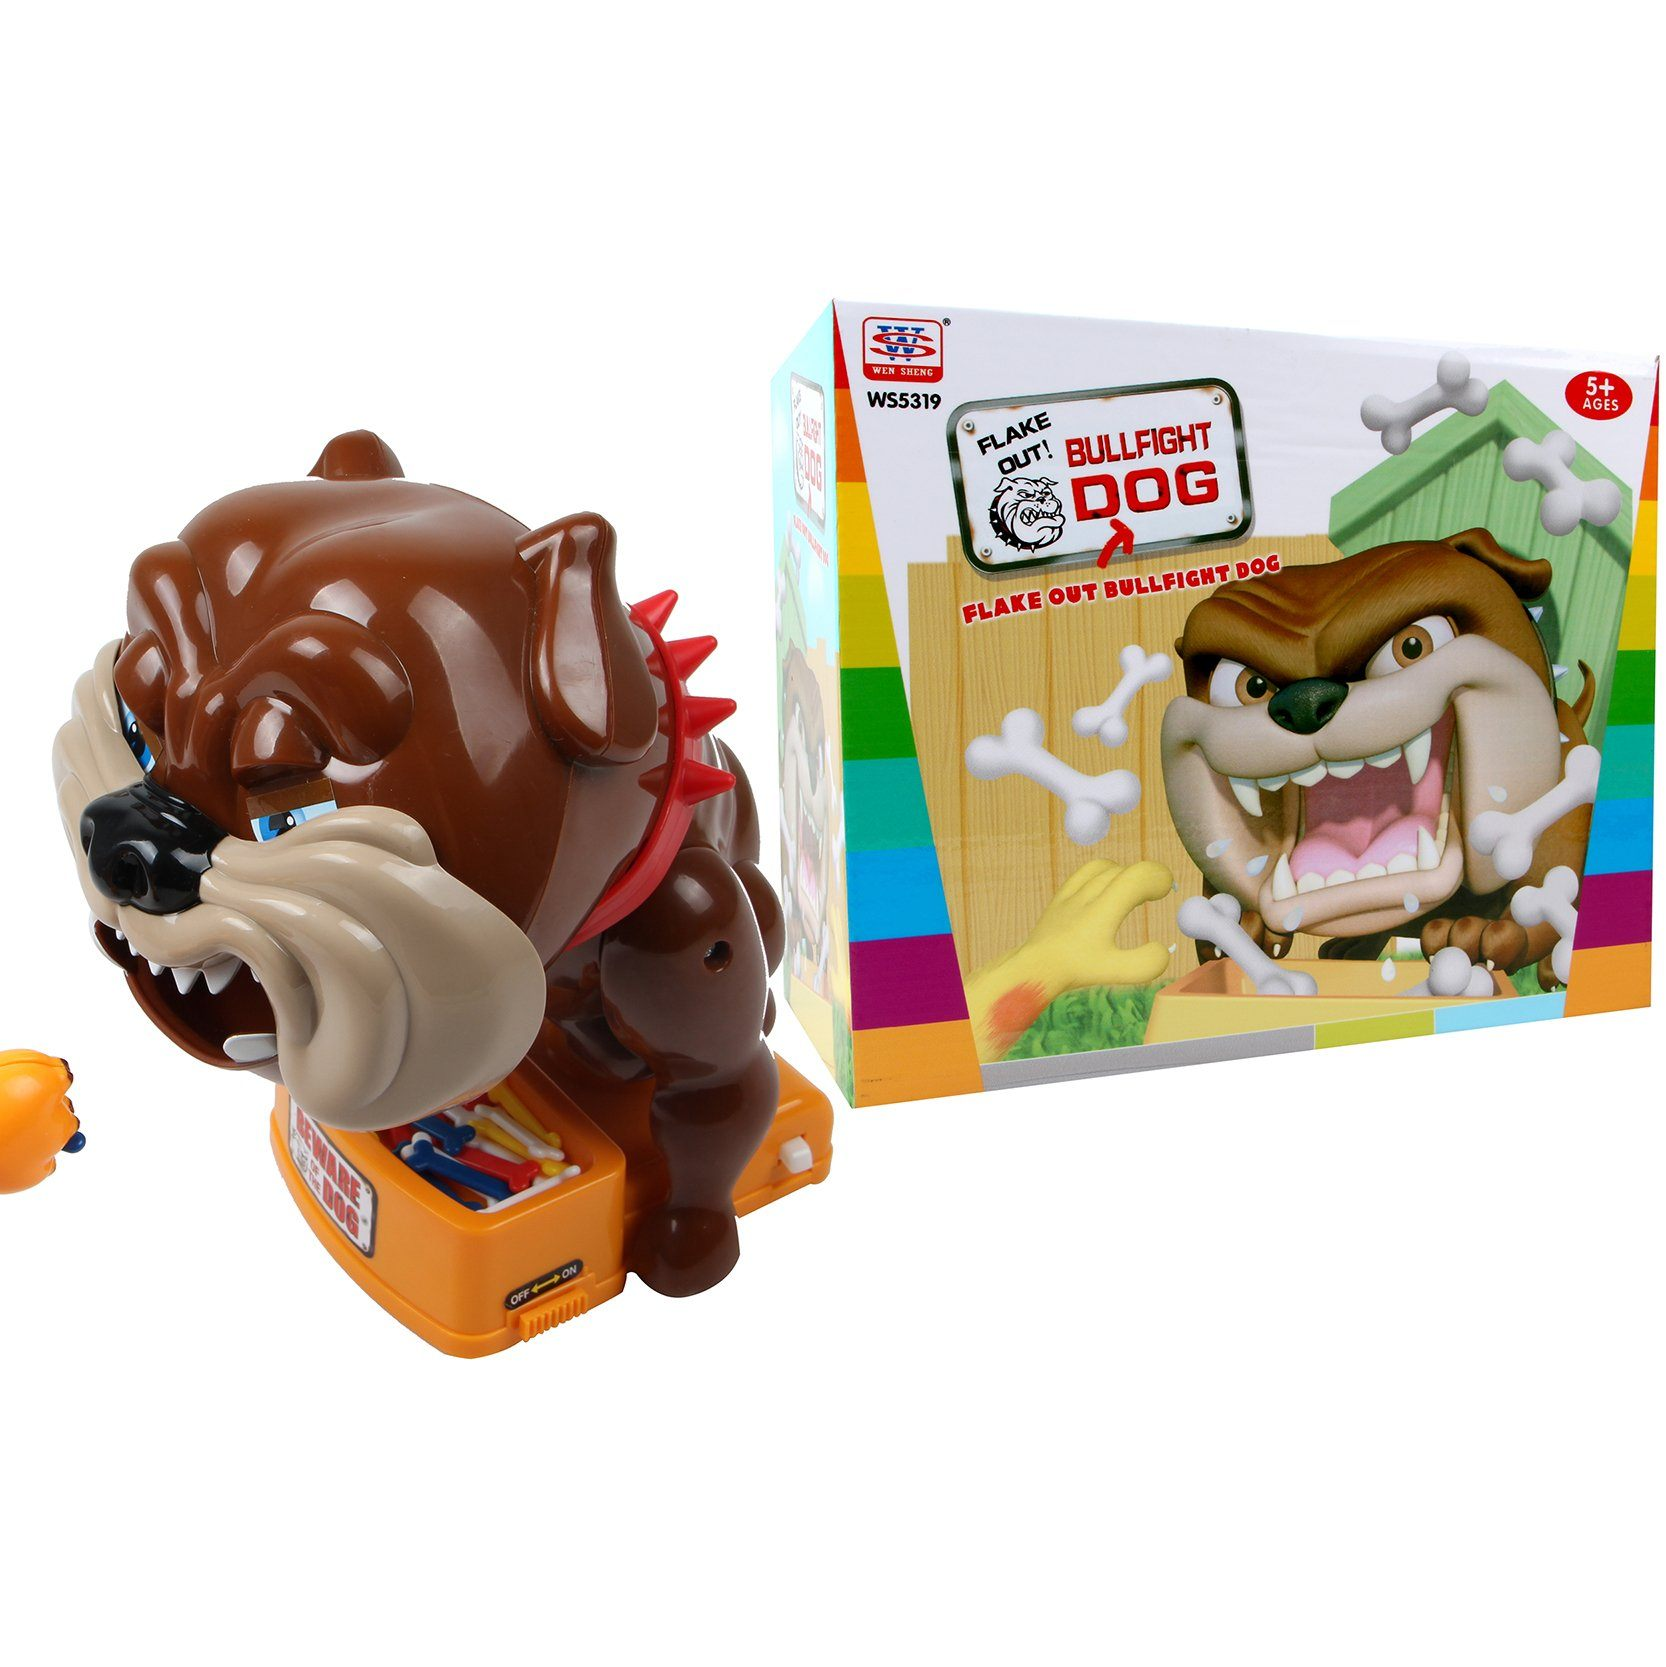 Funny Bad dog finger bite toy with sounds in box packaging